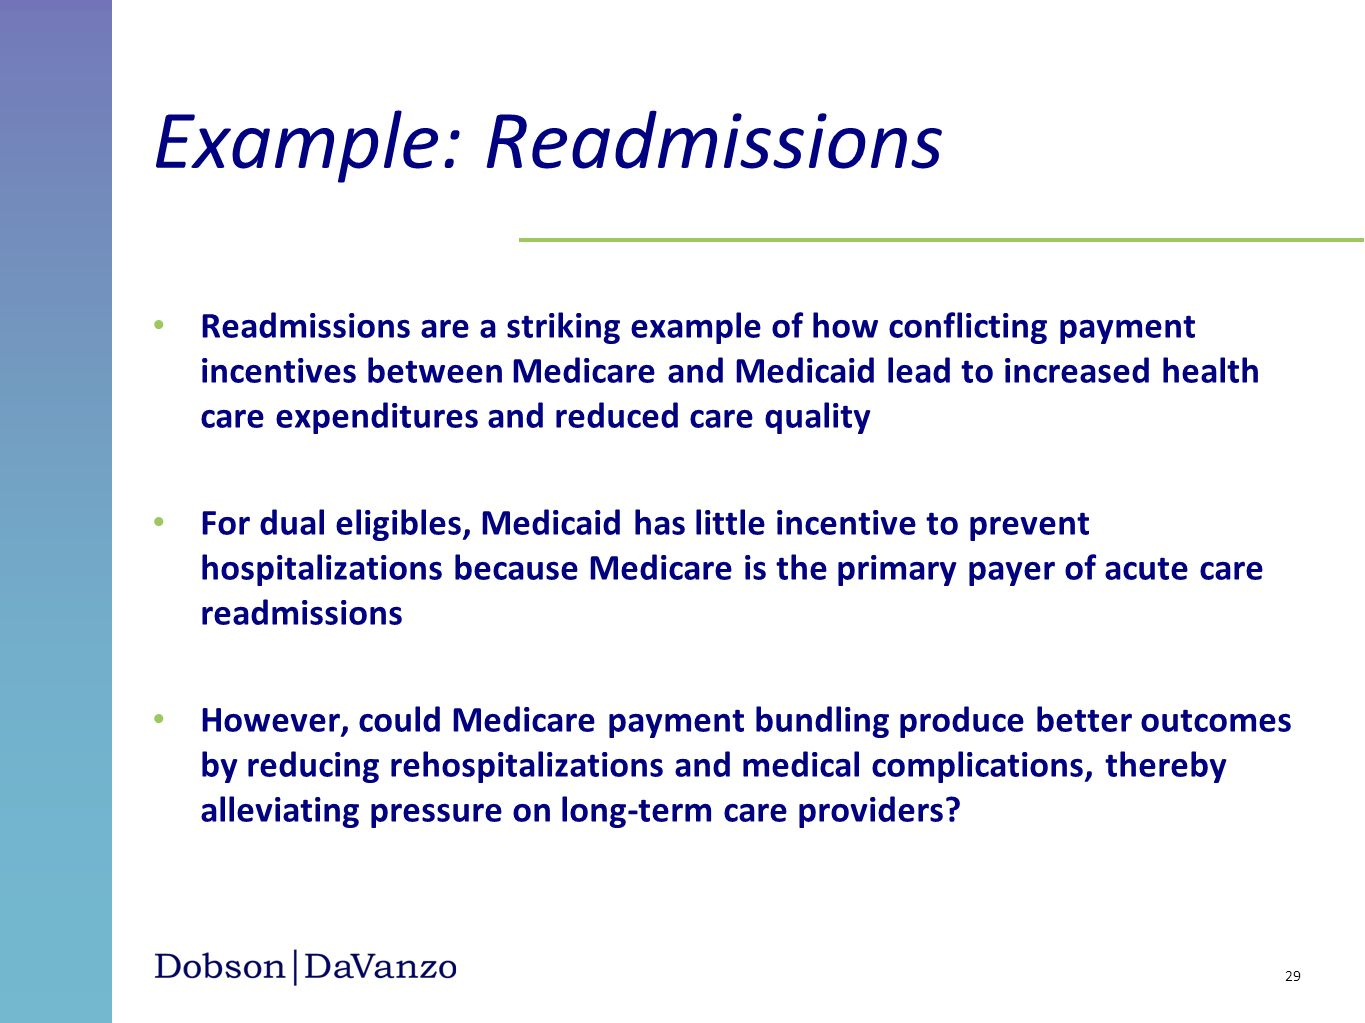 Example: Readmissions